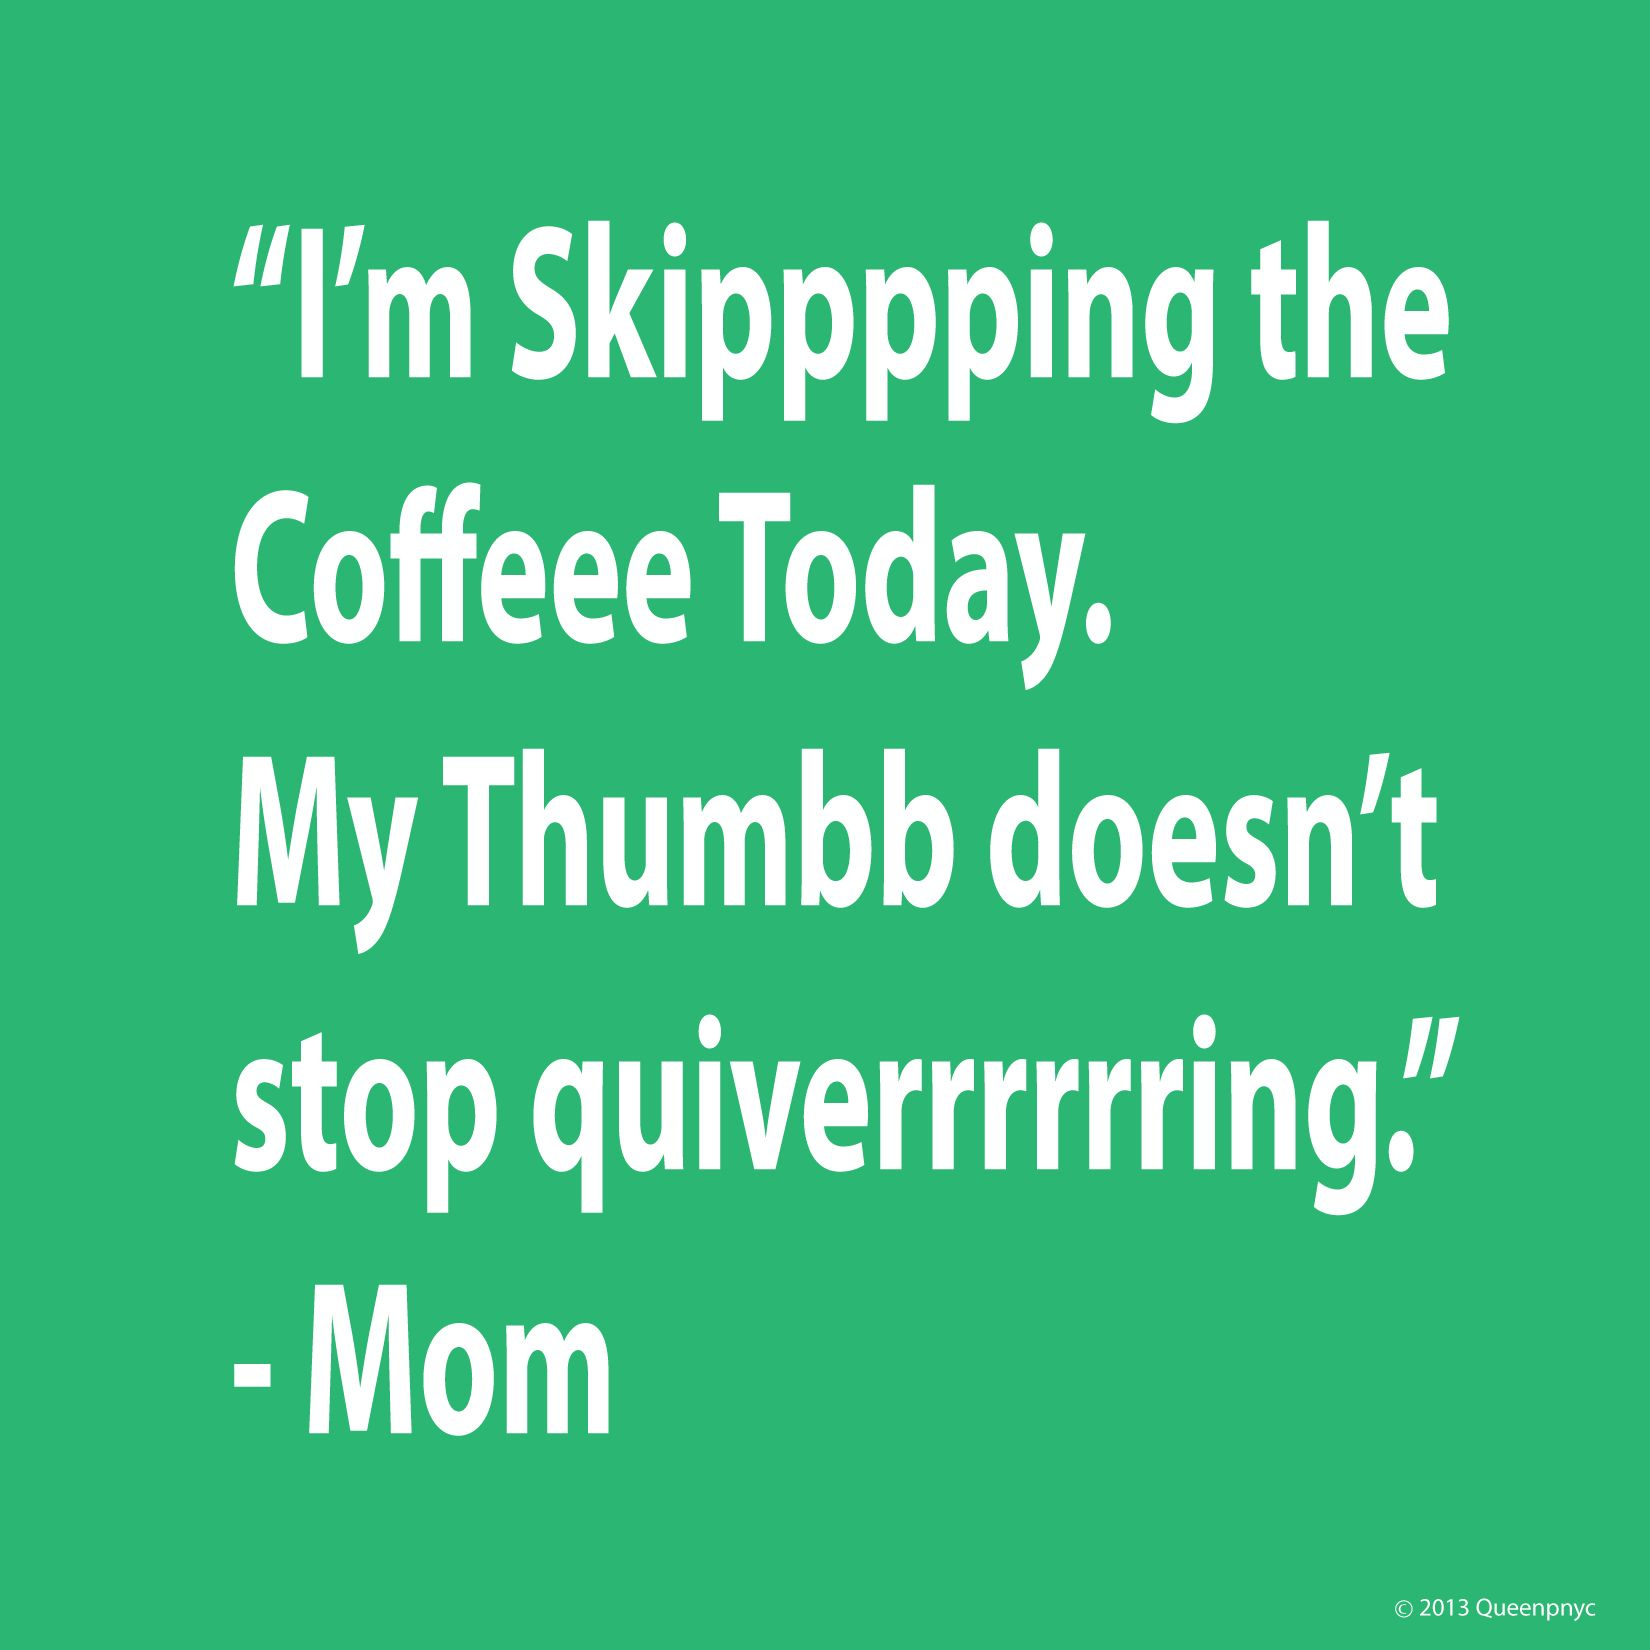 Funny Texts from Mom #mom #funny #quotes #coffee #starbucks ...